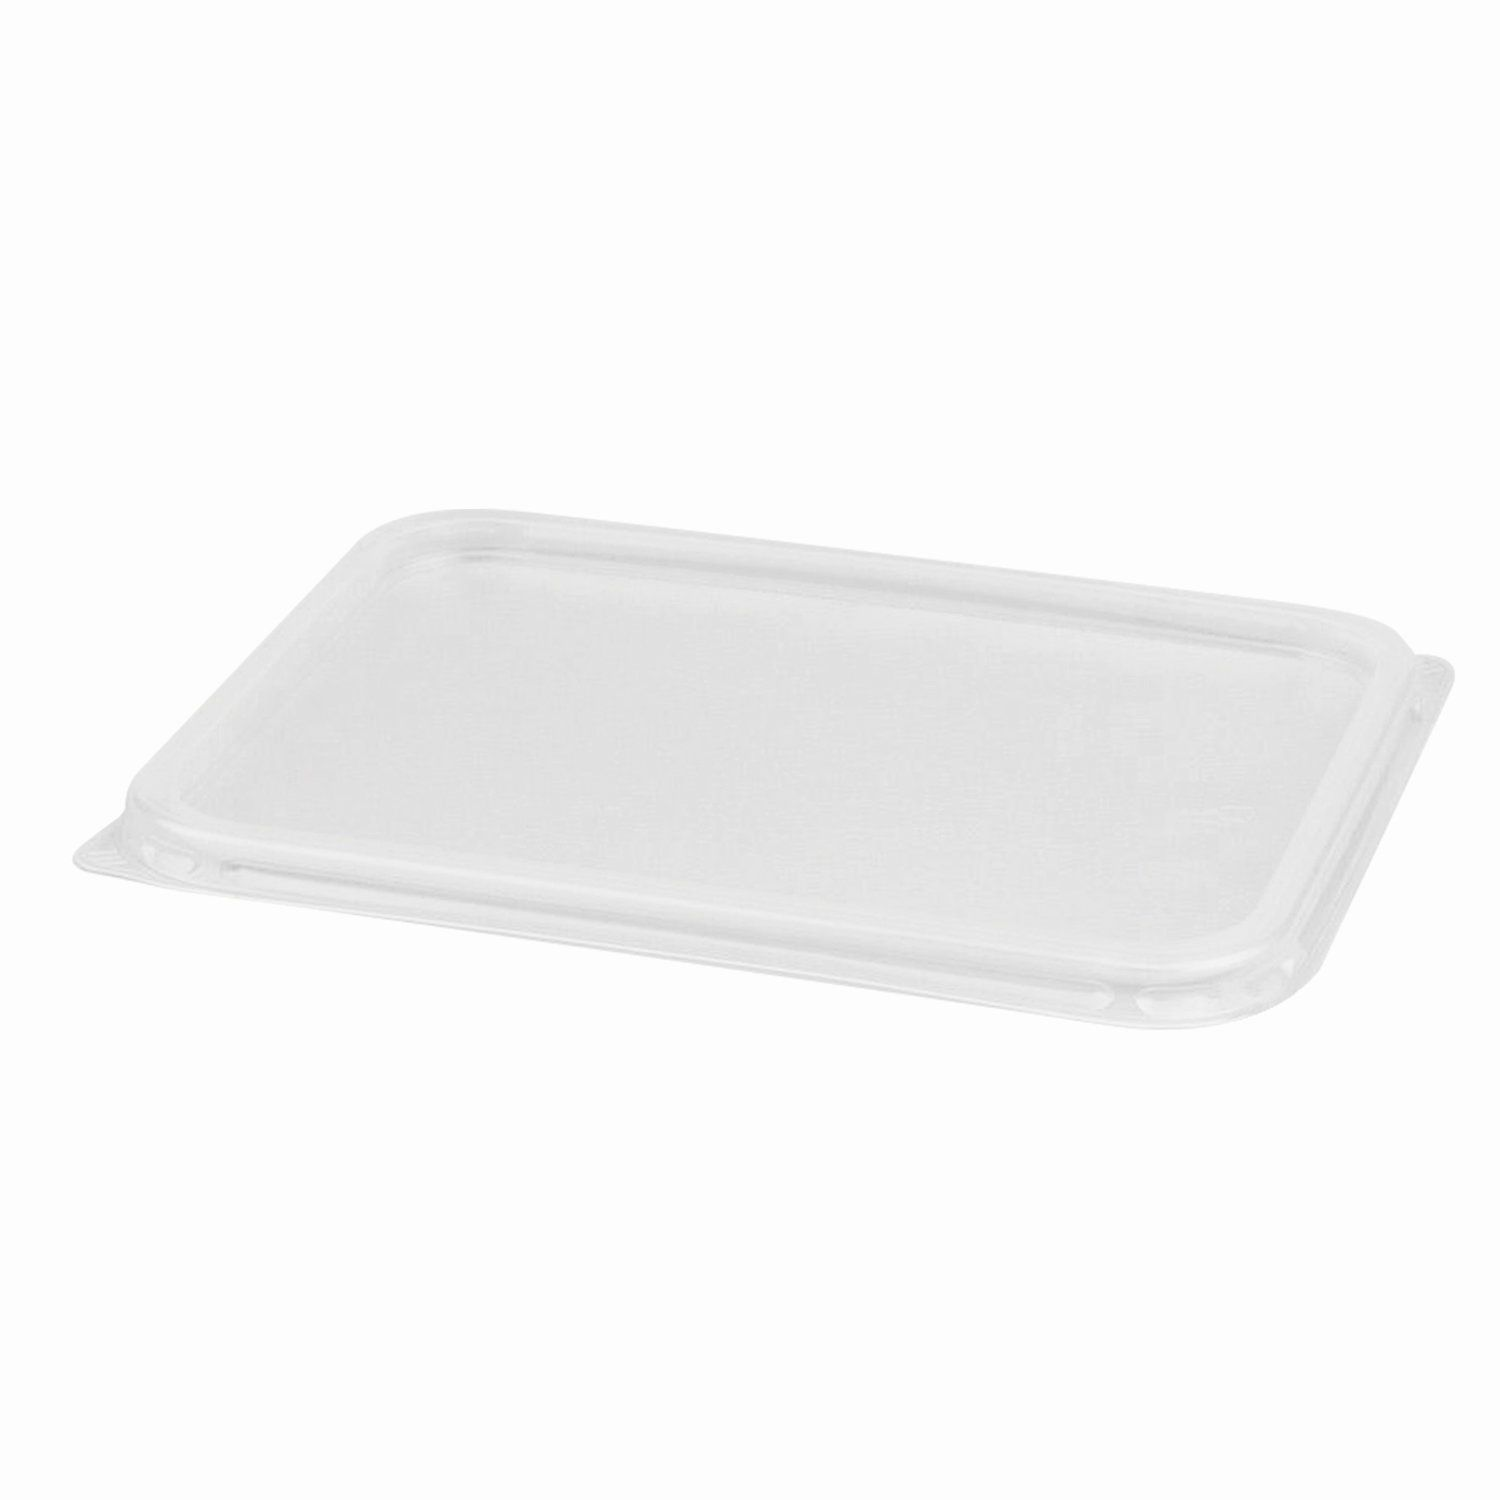 STIROLPLAST / Lids for disposable containers, 179x132 mm, set of 50 pcs., PP (containers 605087, -88, -89, -90)